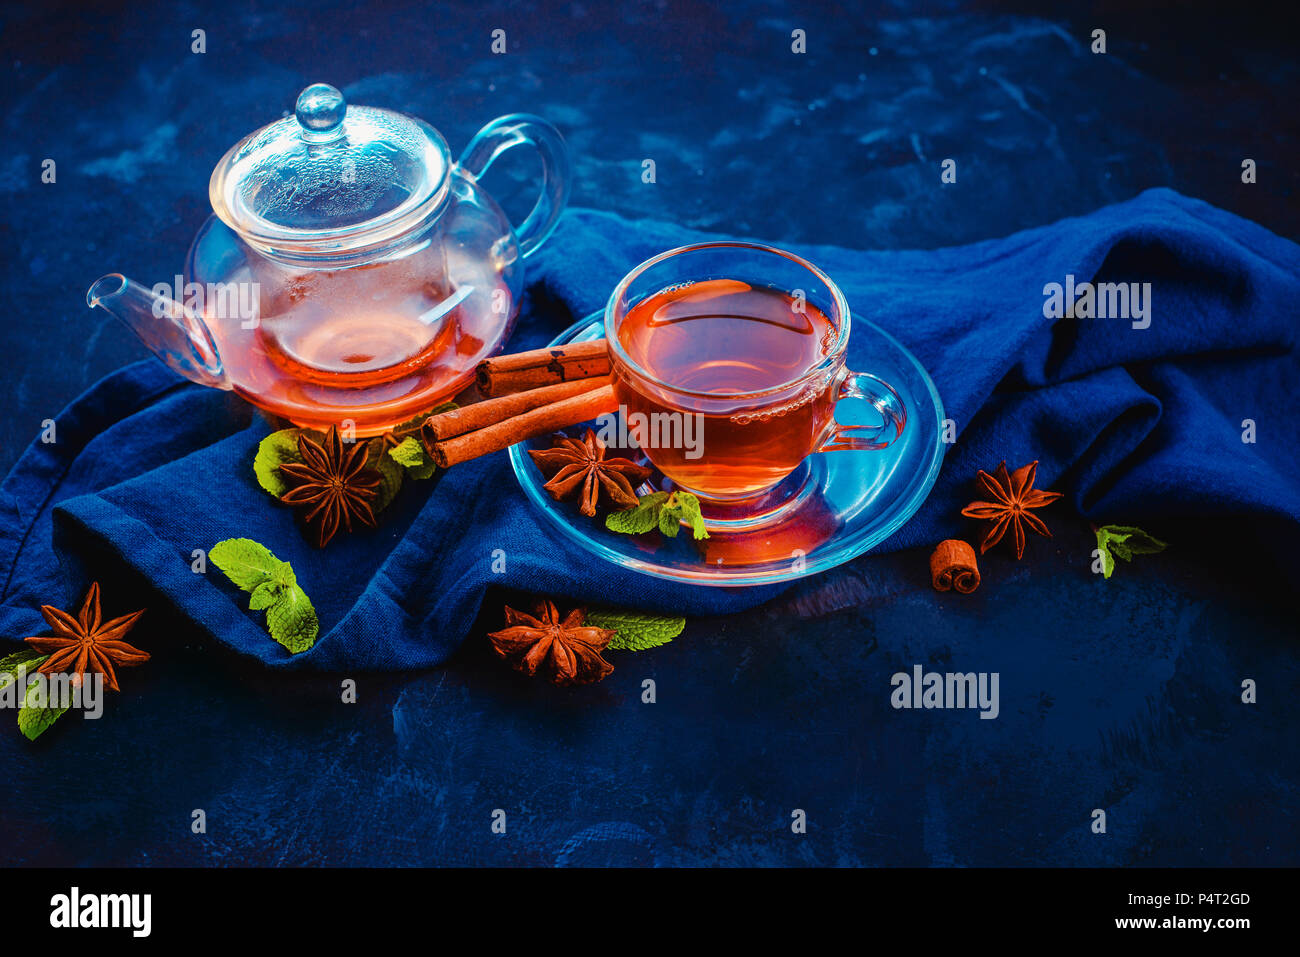 Black tea in a glass cup and a tiny teapot with lemon slices and mint leaves on a dark background. Vibrant colors hot drink header with copy space. - Stock Image